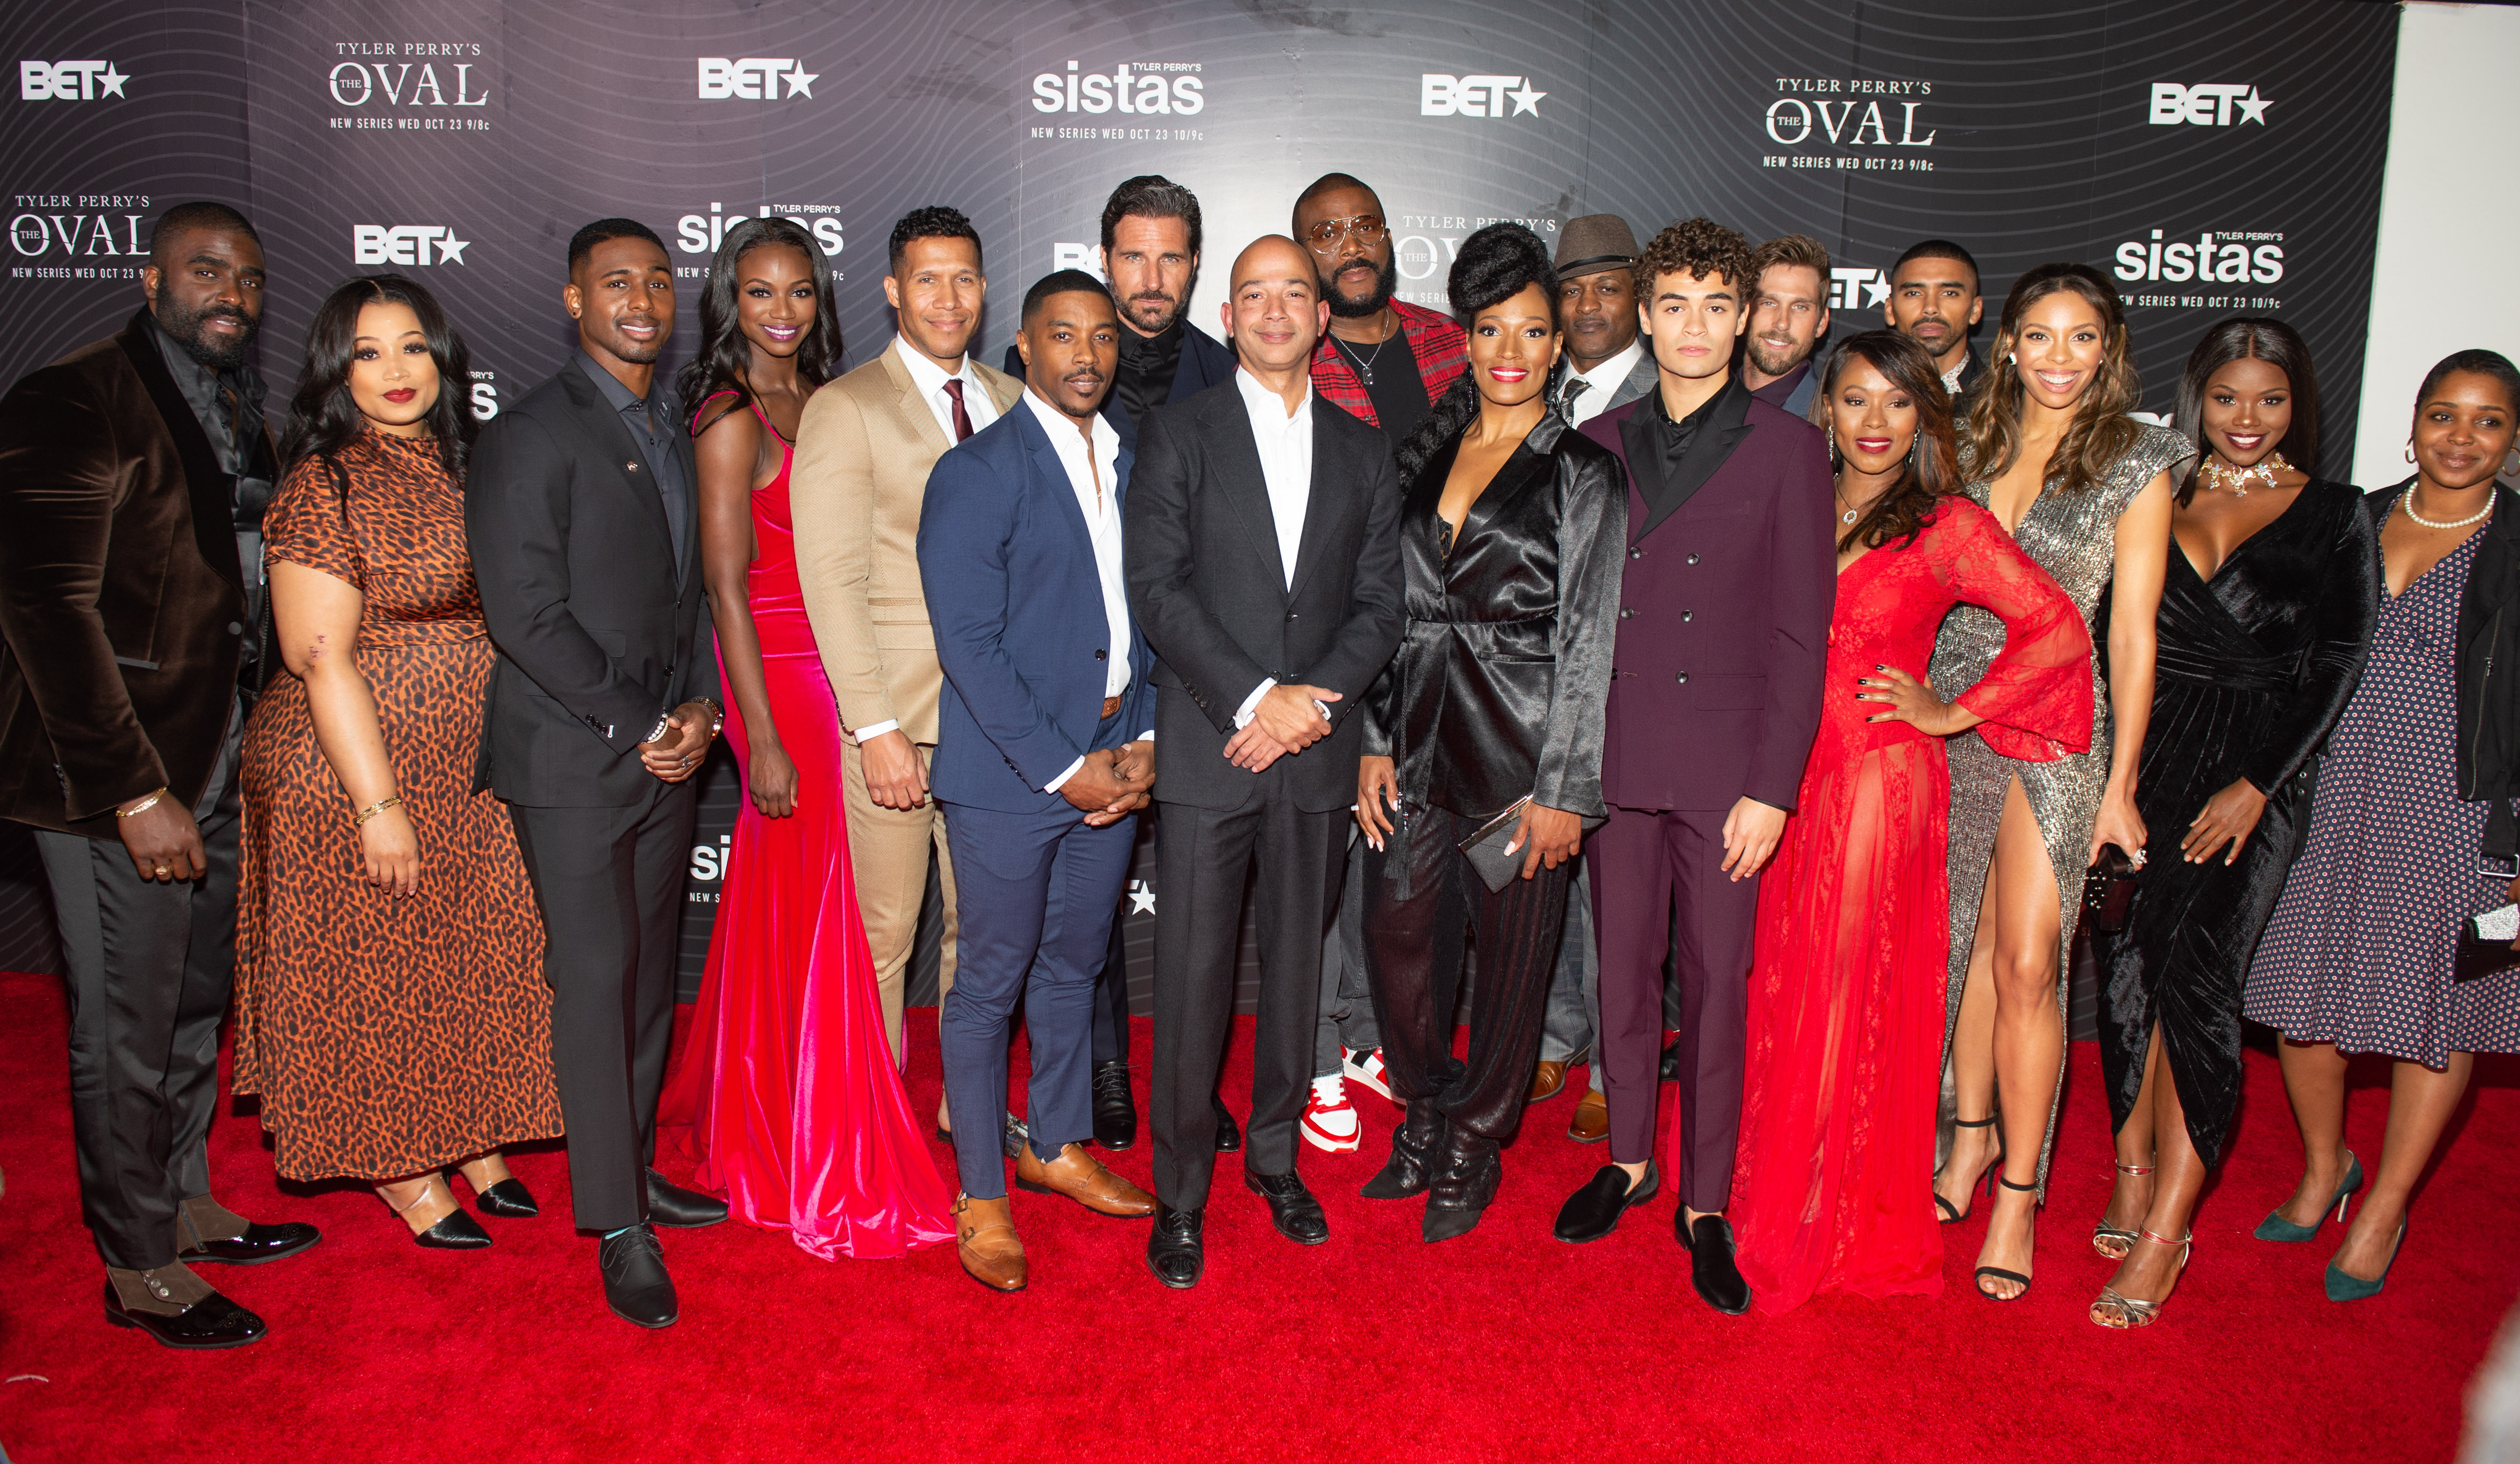 BET & Tyler Perry's New Original Series The Oval And Sistas Premiere Party In ATL